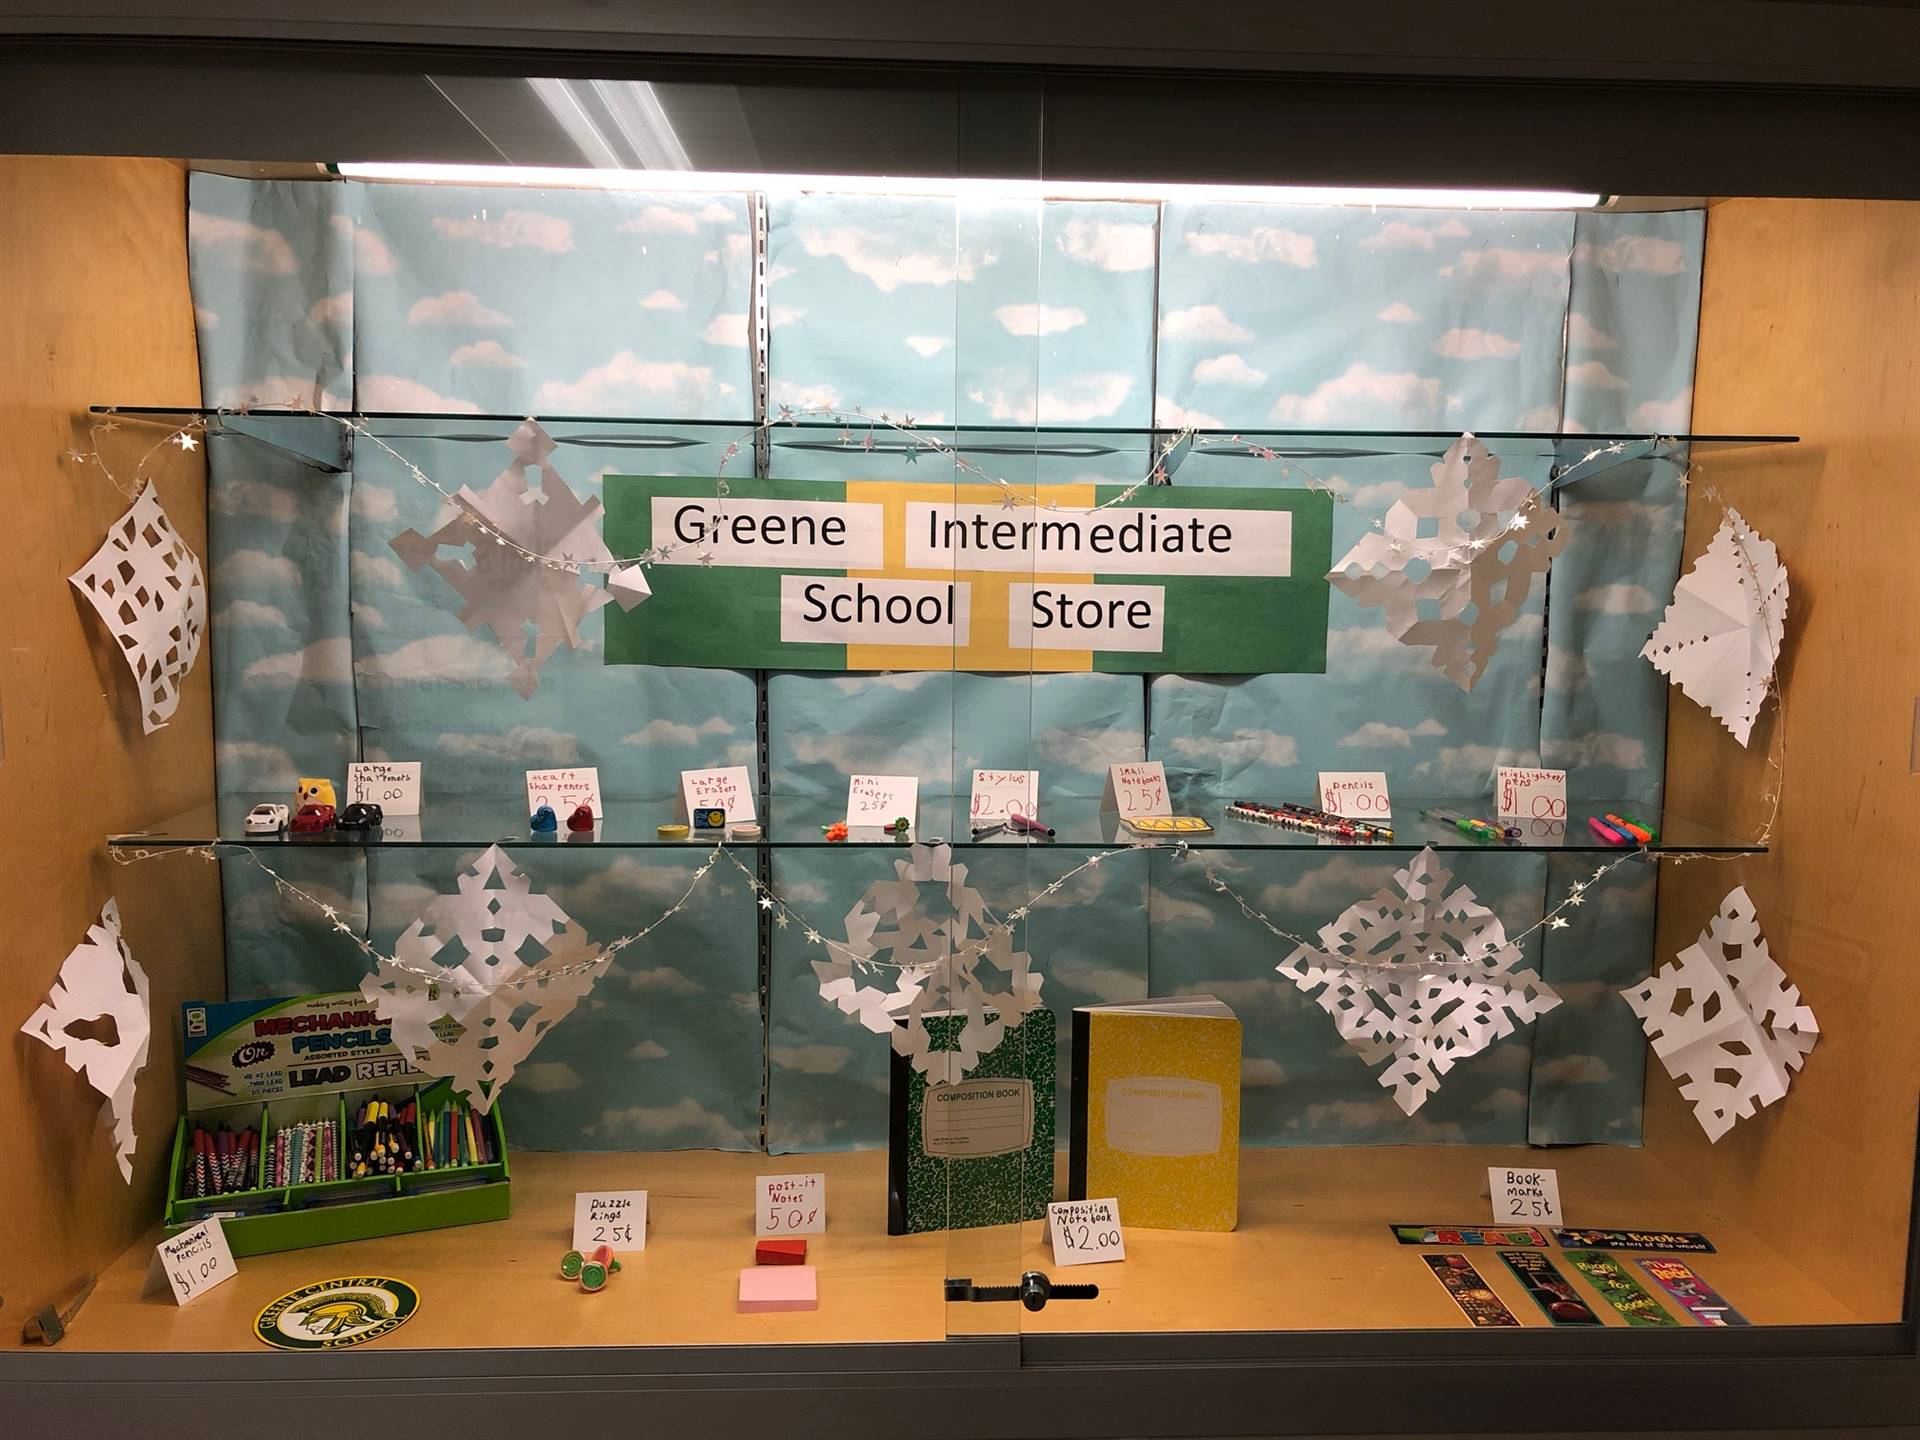 The Greene Intermediate School Store